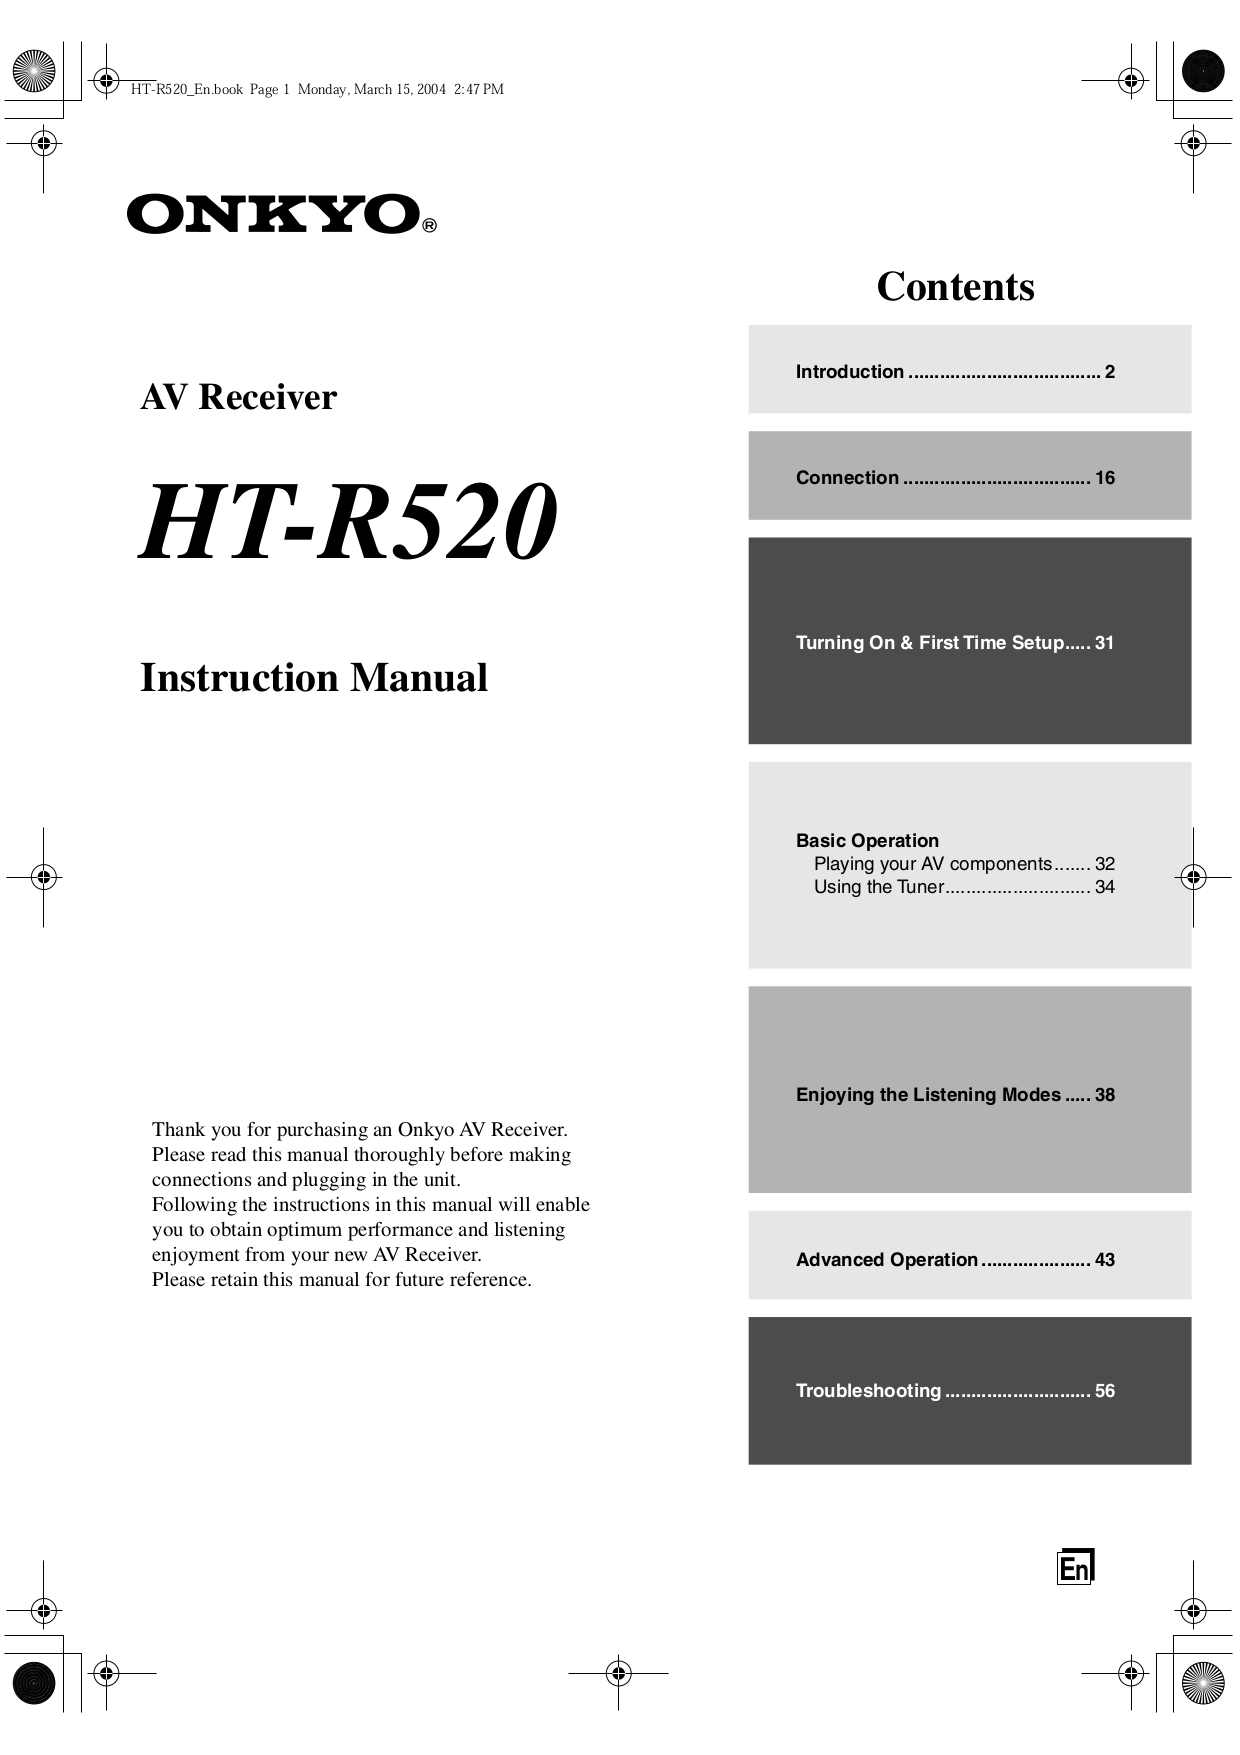 FRLGJHTRXYAC.PDF 0 download free pdf for onkyo ht r520 receiver manual  at reclaimingppi.co